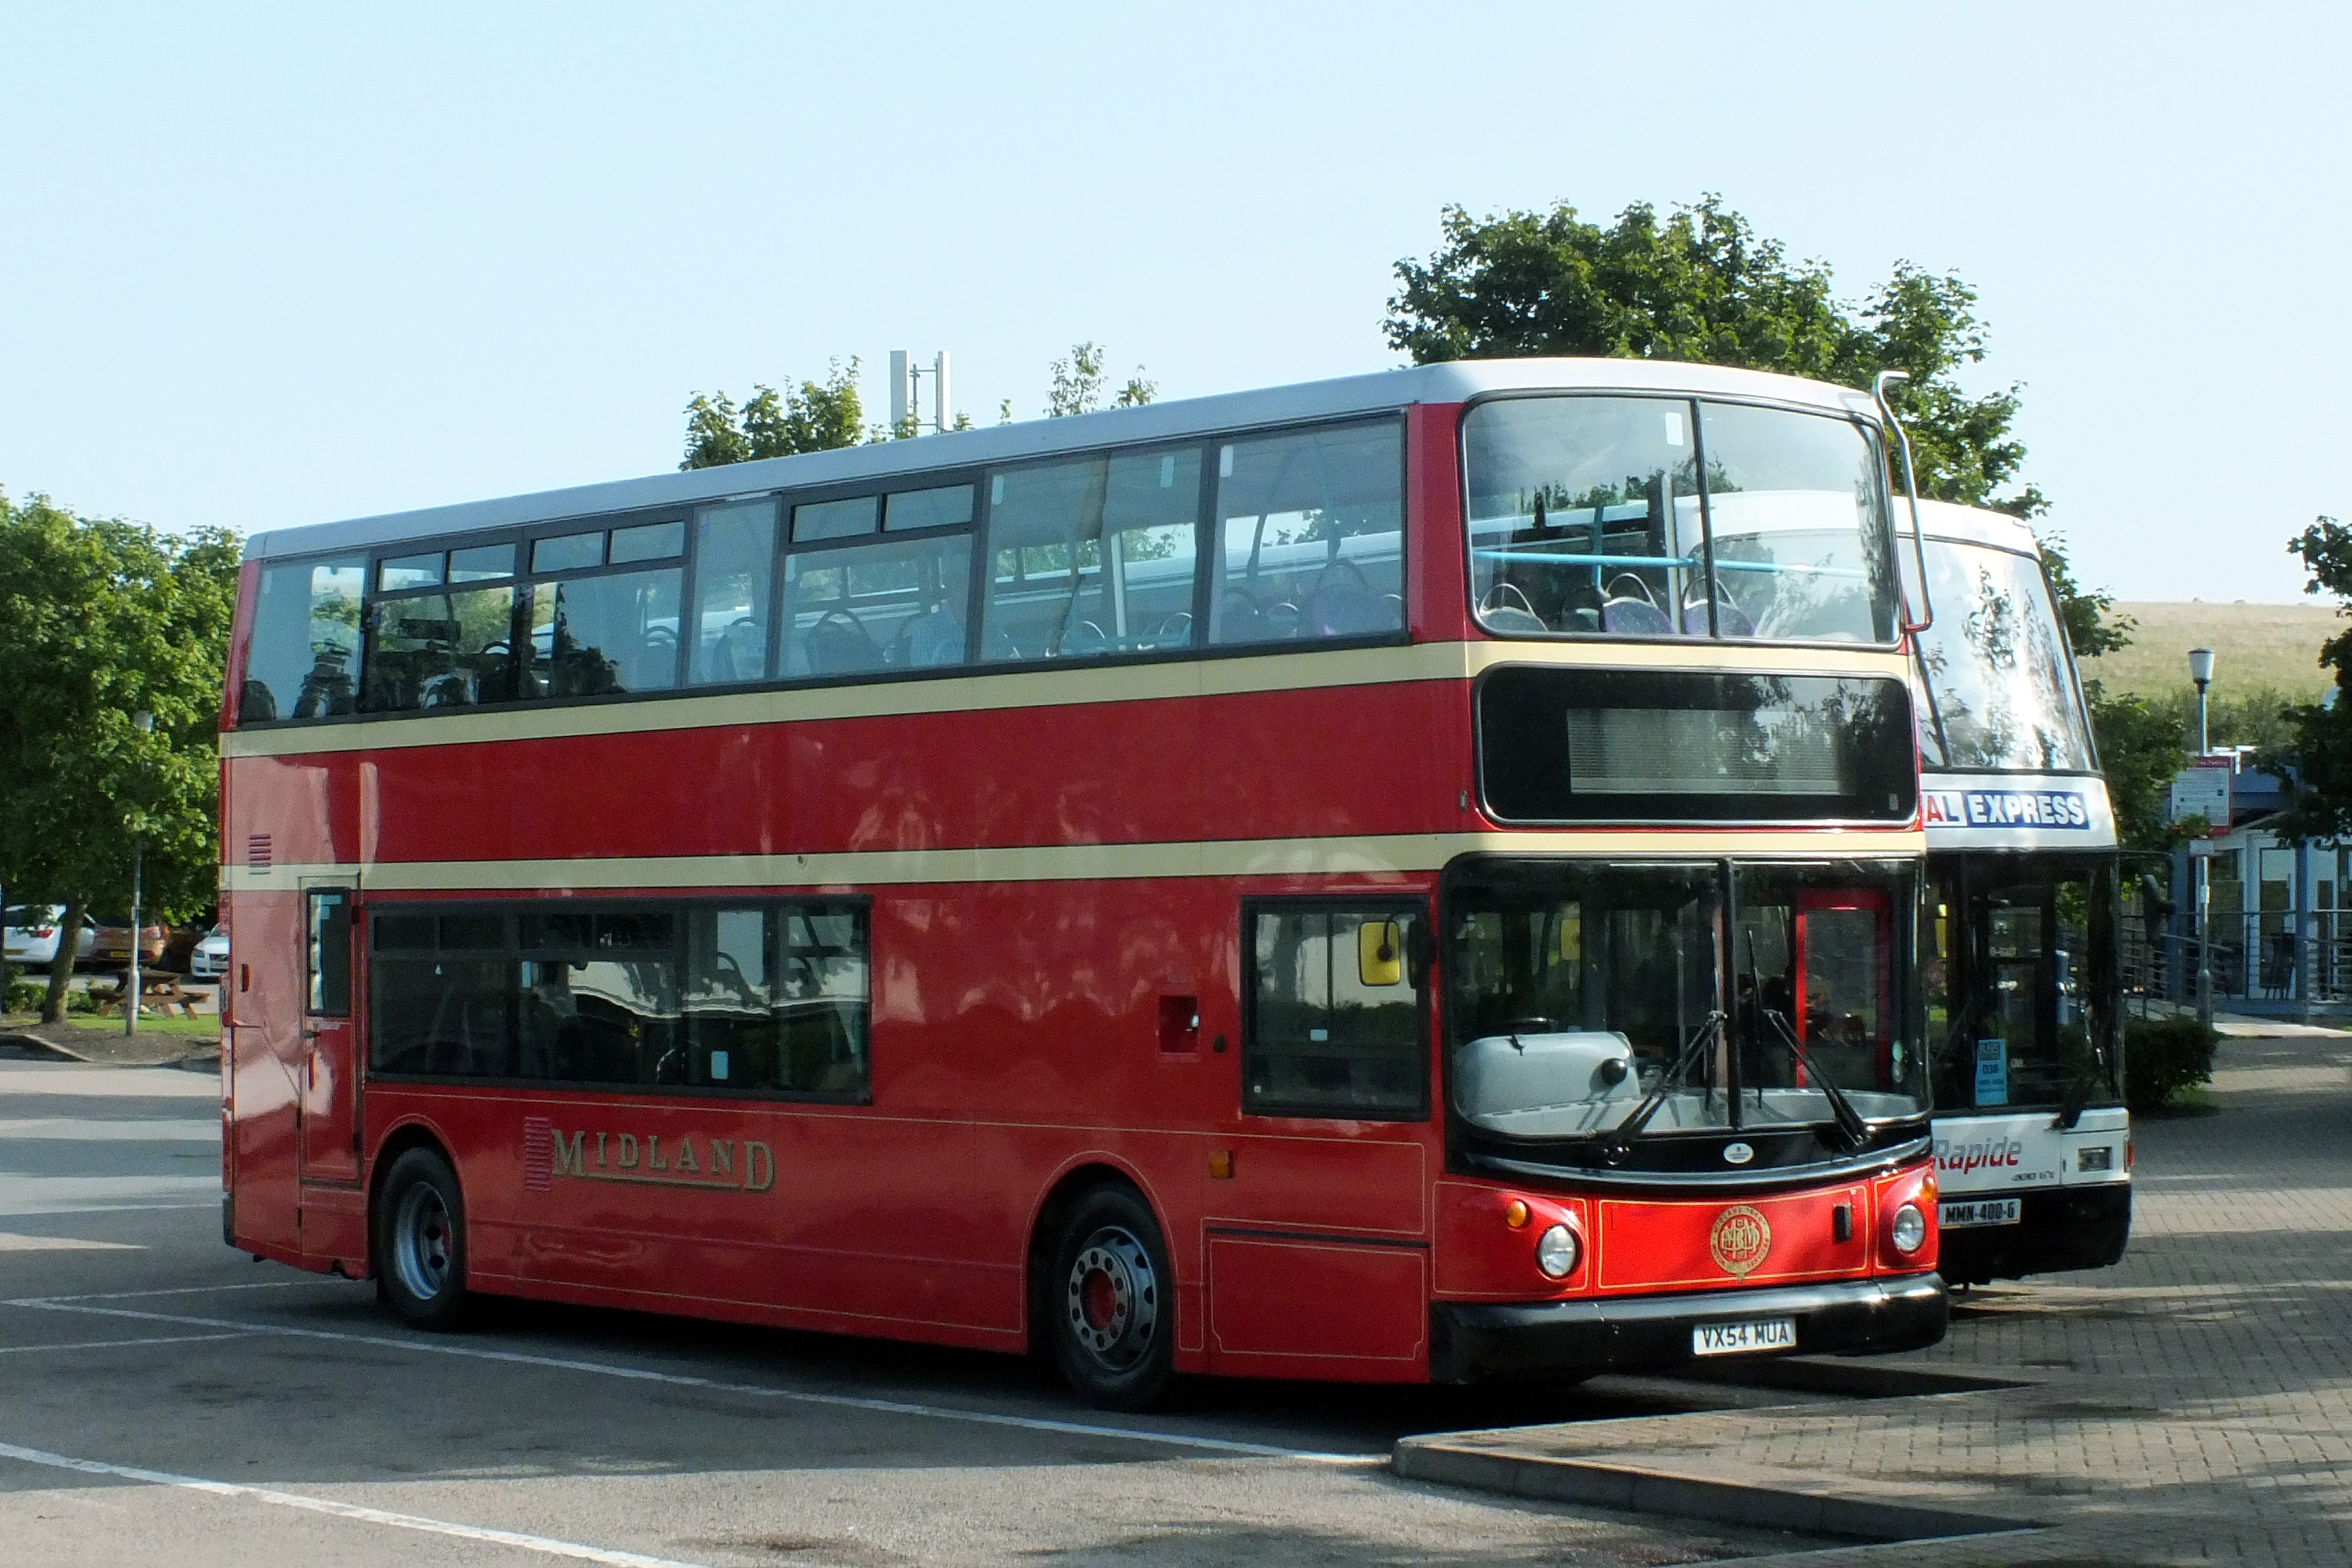 20 August 2017 Gaydon Museum Bus Rally 005.jpg